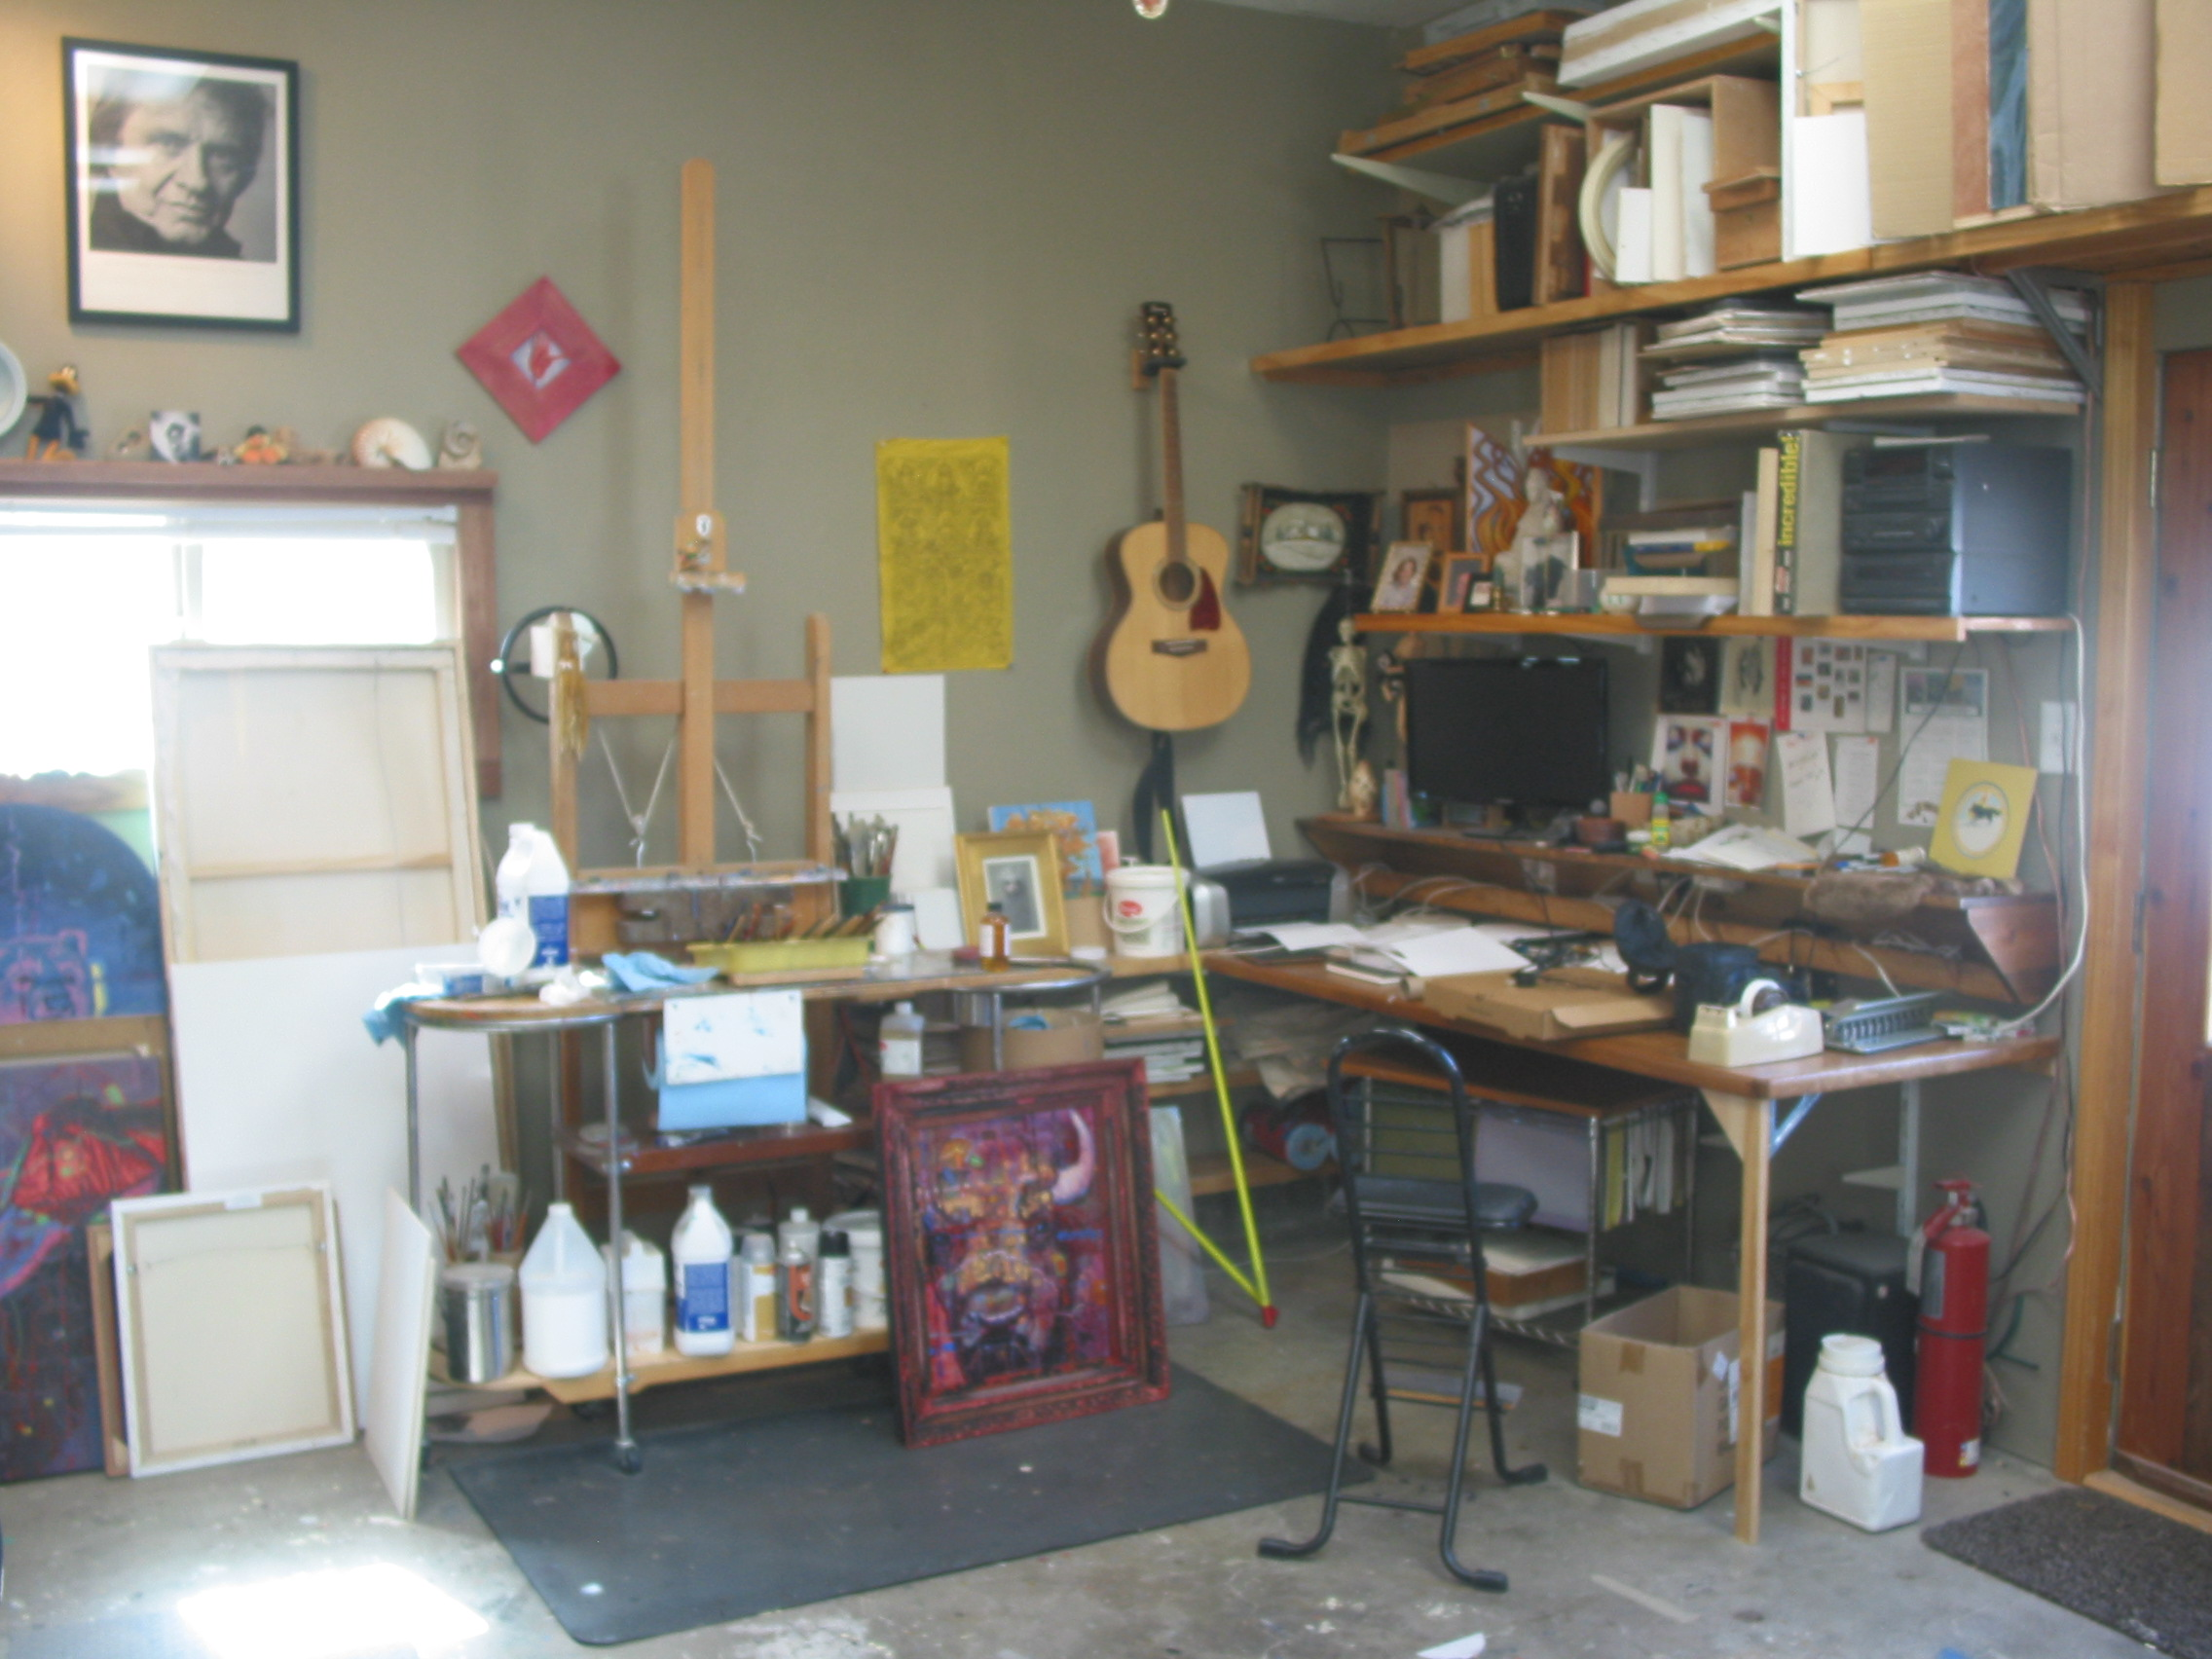 Here is a view of my easel without a painting on it. My Painting Table that holds my pallet and on the right a table and a computer screen that I view my photos and references with. You can see the guitar on the wall and a poster of the Man in Black. There are unfinished canvases on the floor to the left.